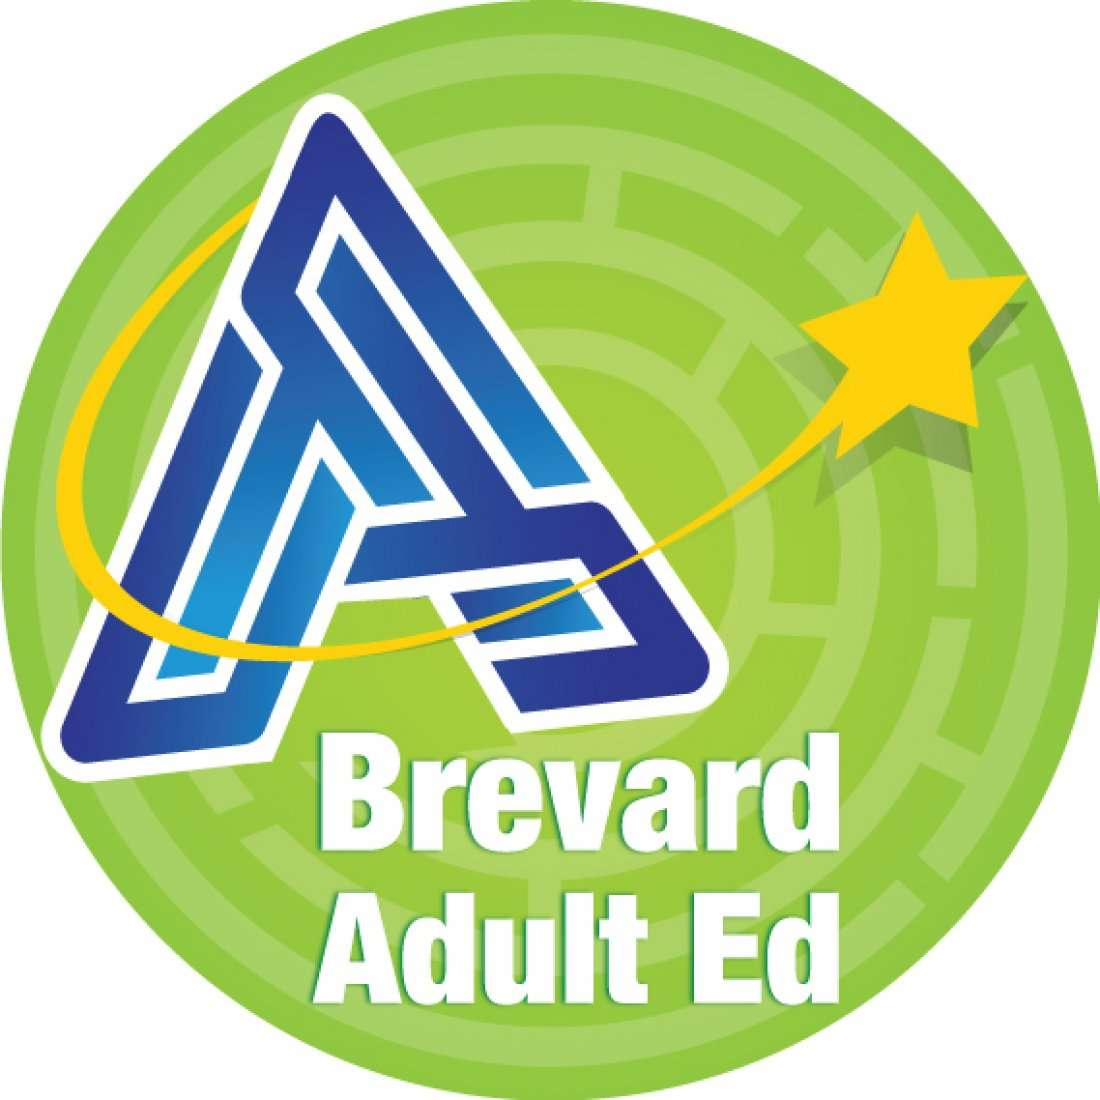 Microsoft Office Specialist Certification Course At Brevard Adult